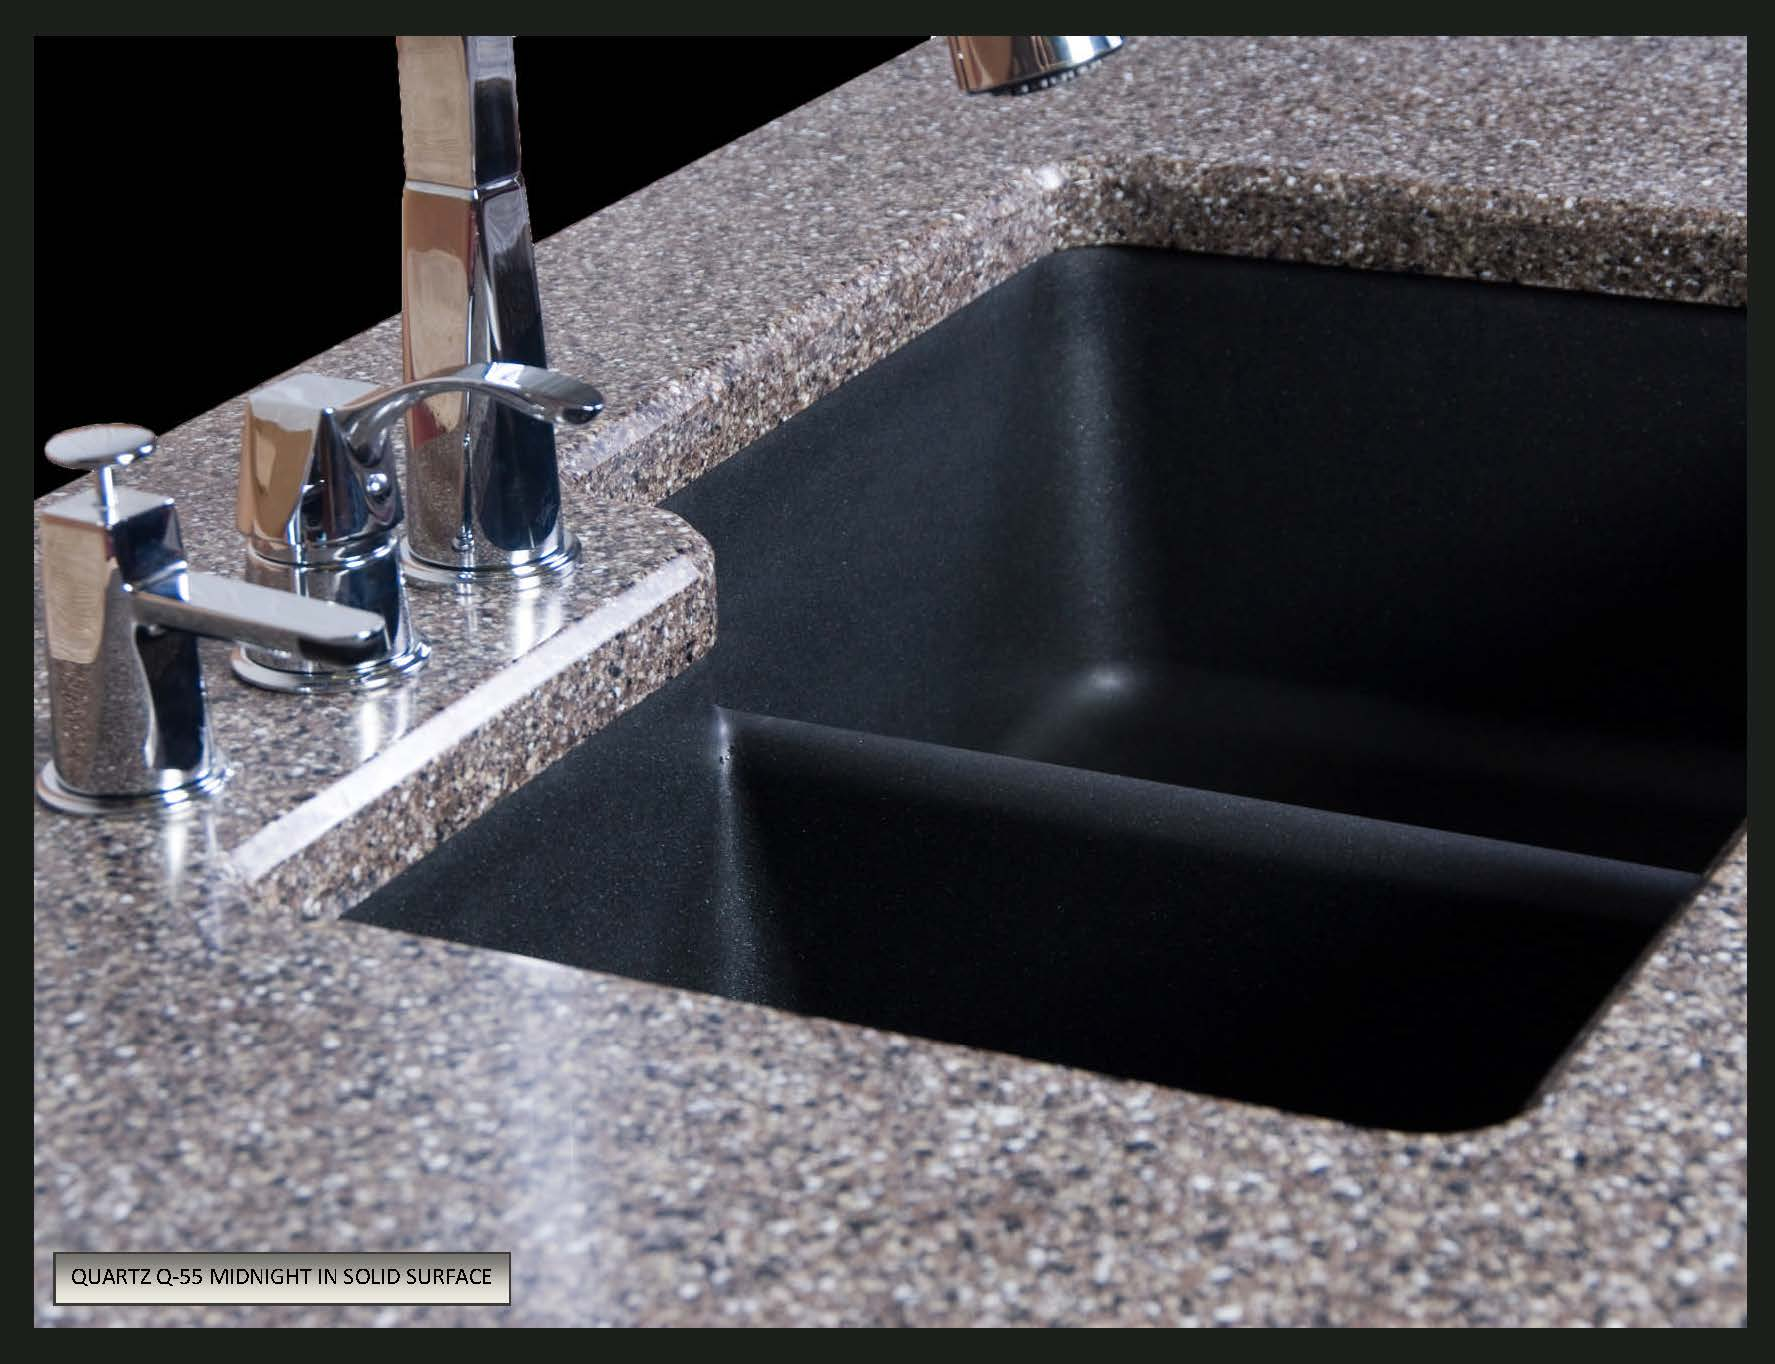 Granite composite kitchen sinks pros cons - Granite Or Quartz Composite Sinks Karran Quartz Undermount Sink